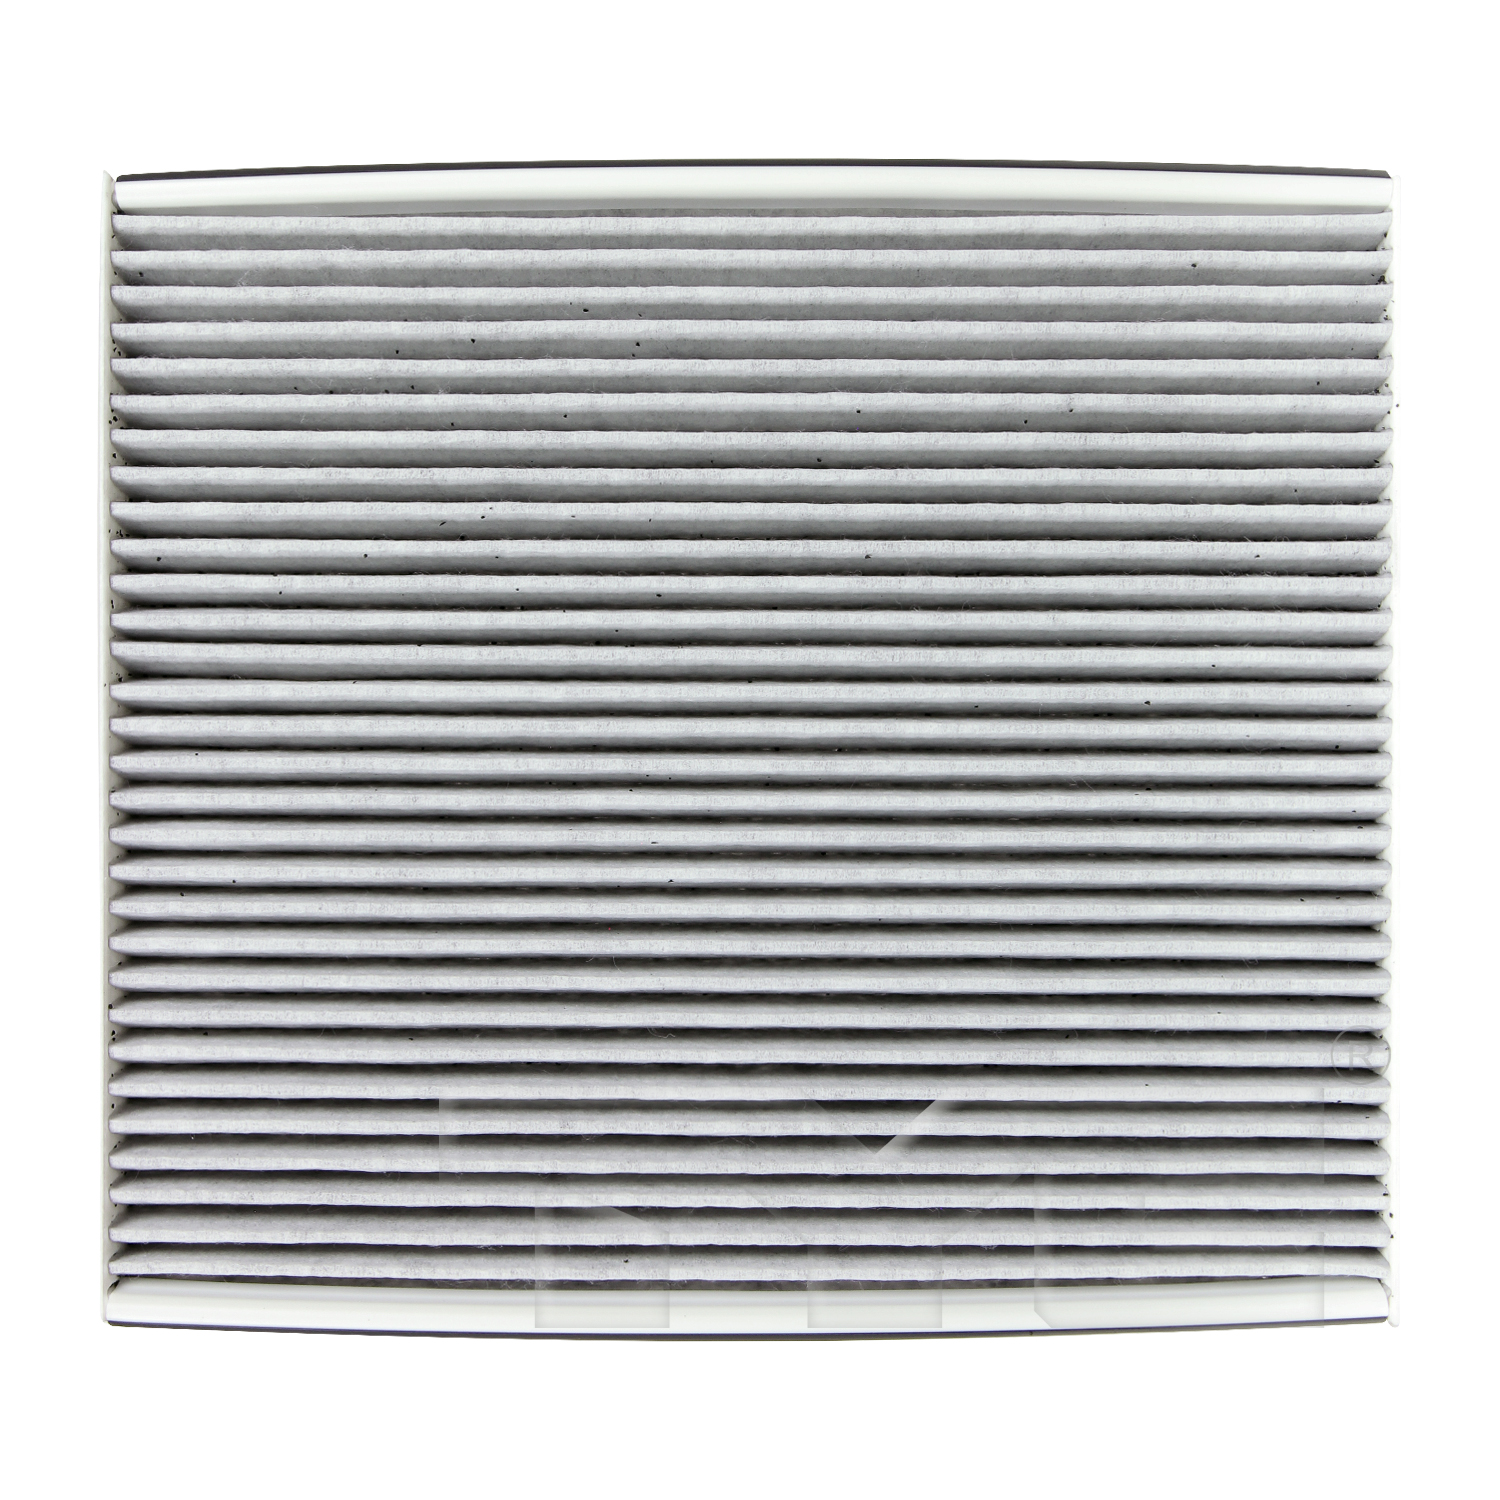 03-14 Cadillac CTS/04-09 SRX A/C Cabin Air Filter